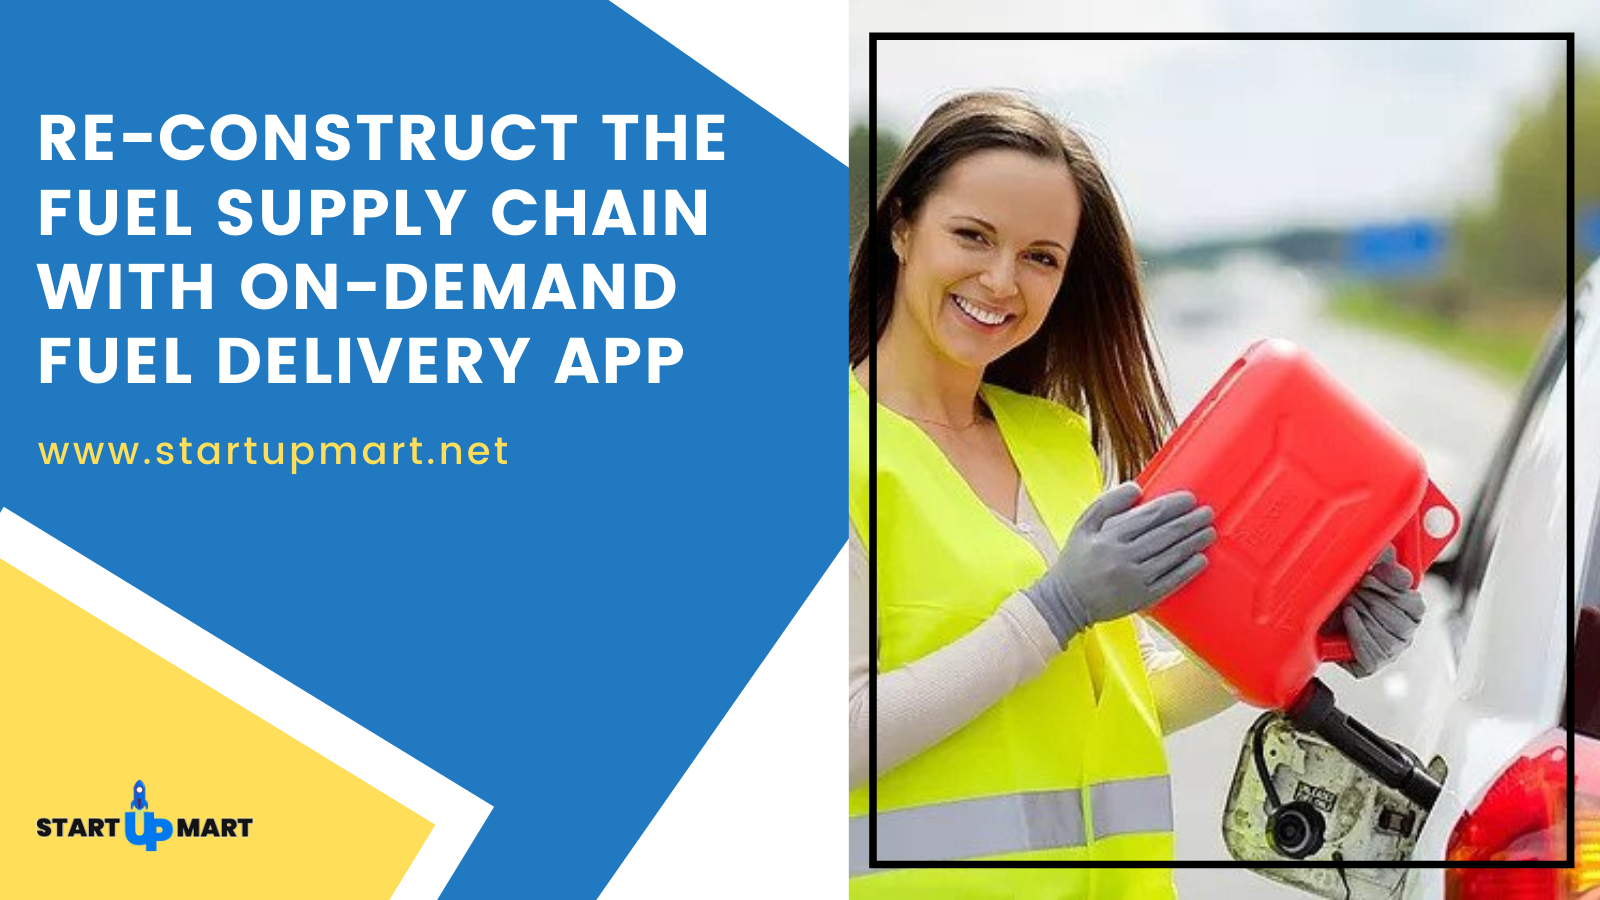 Re-Construct The Fuel Supply Chain With On-Demand Fuel Delivery App